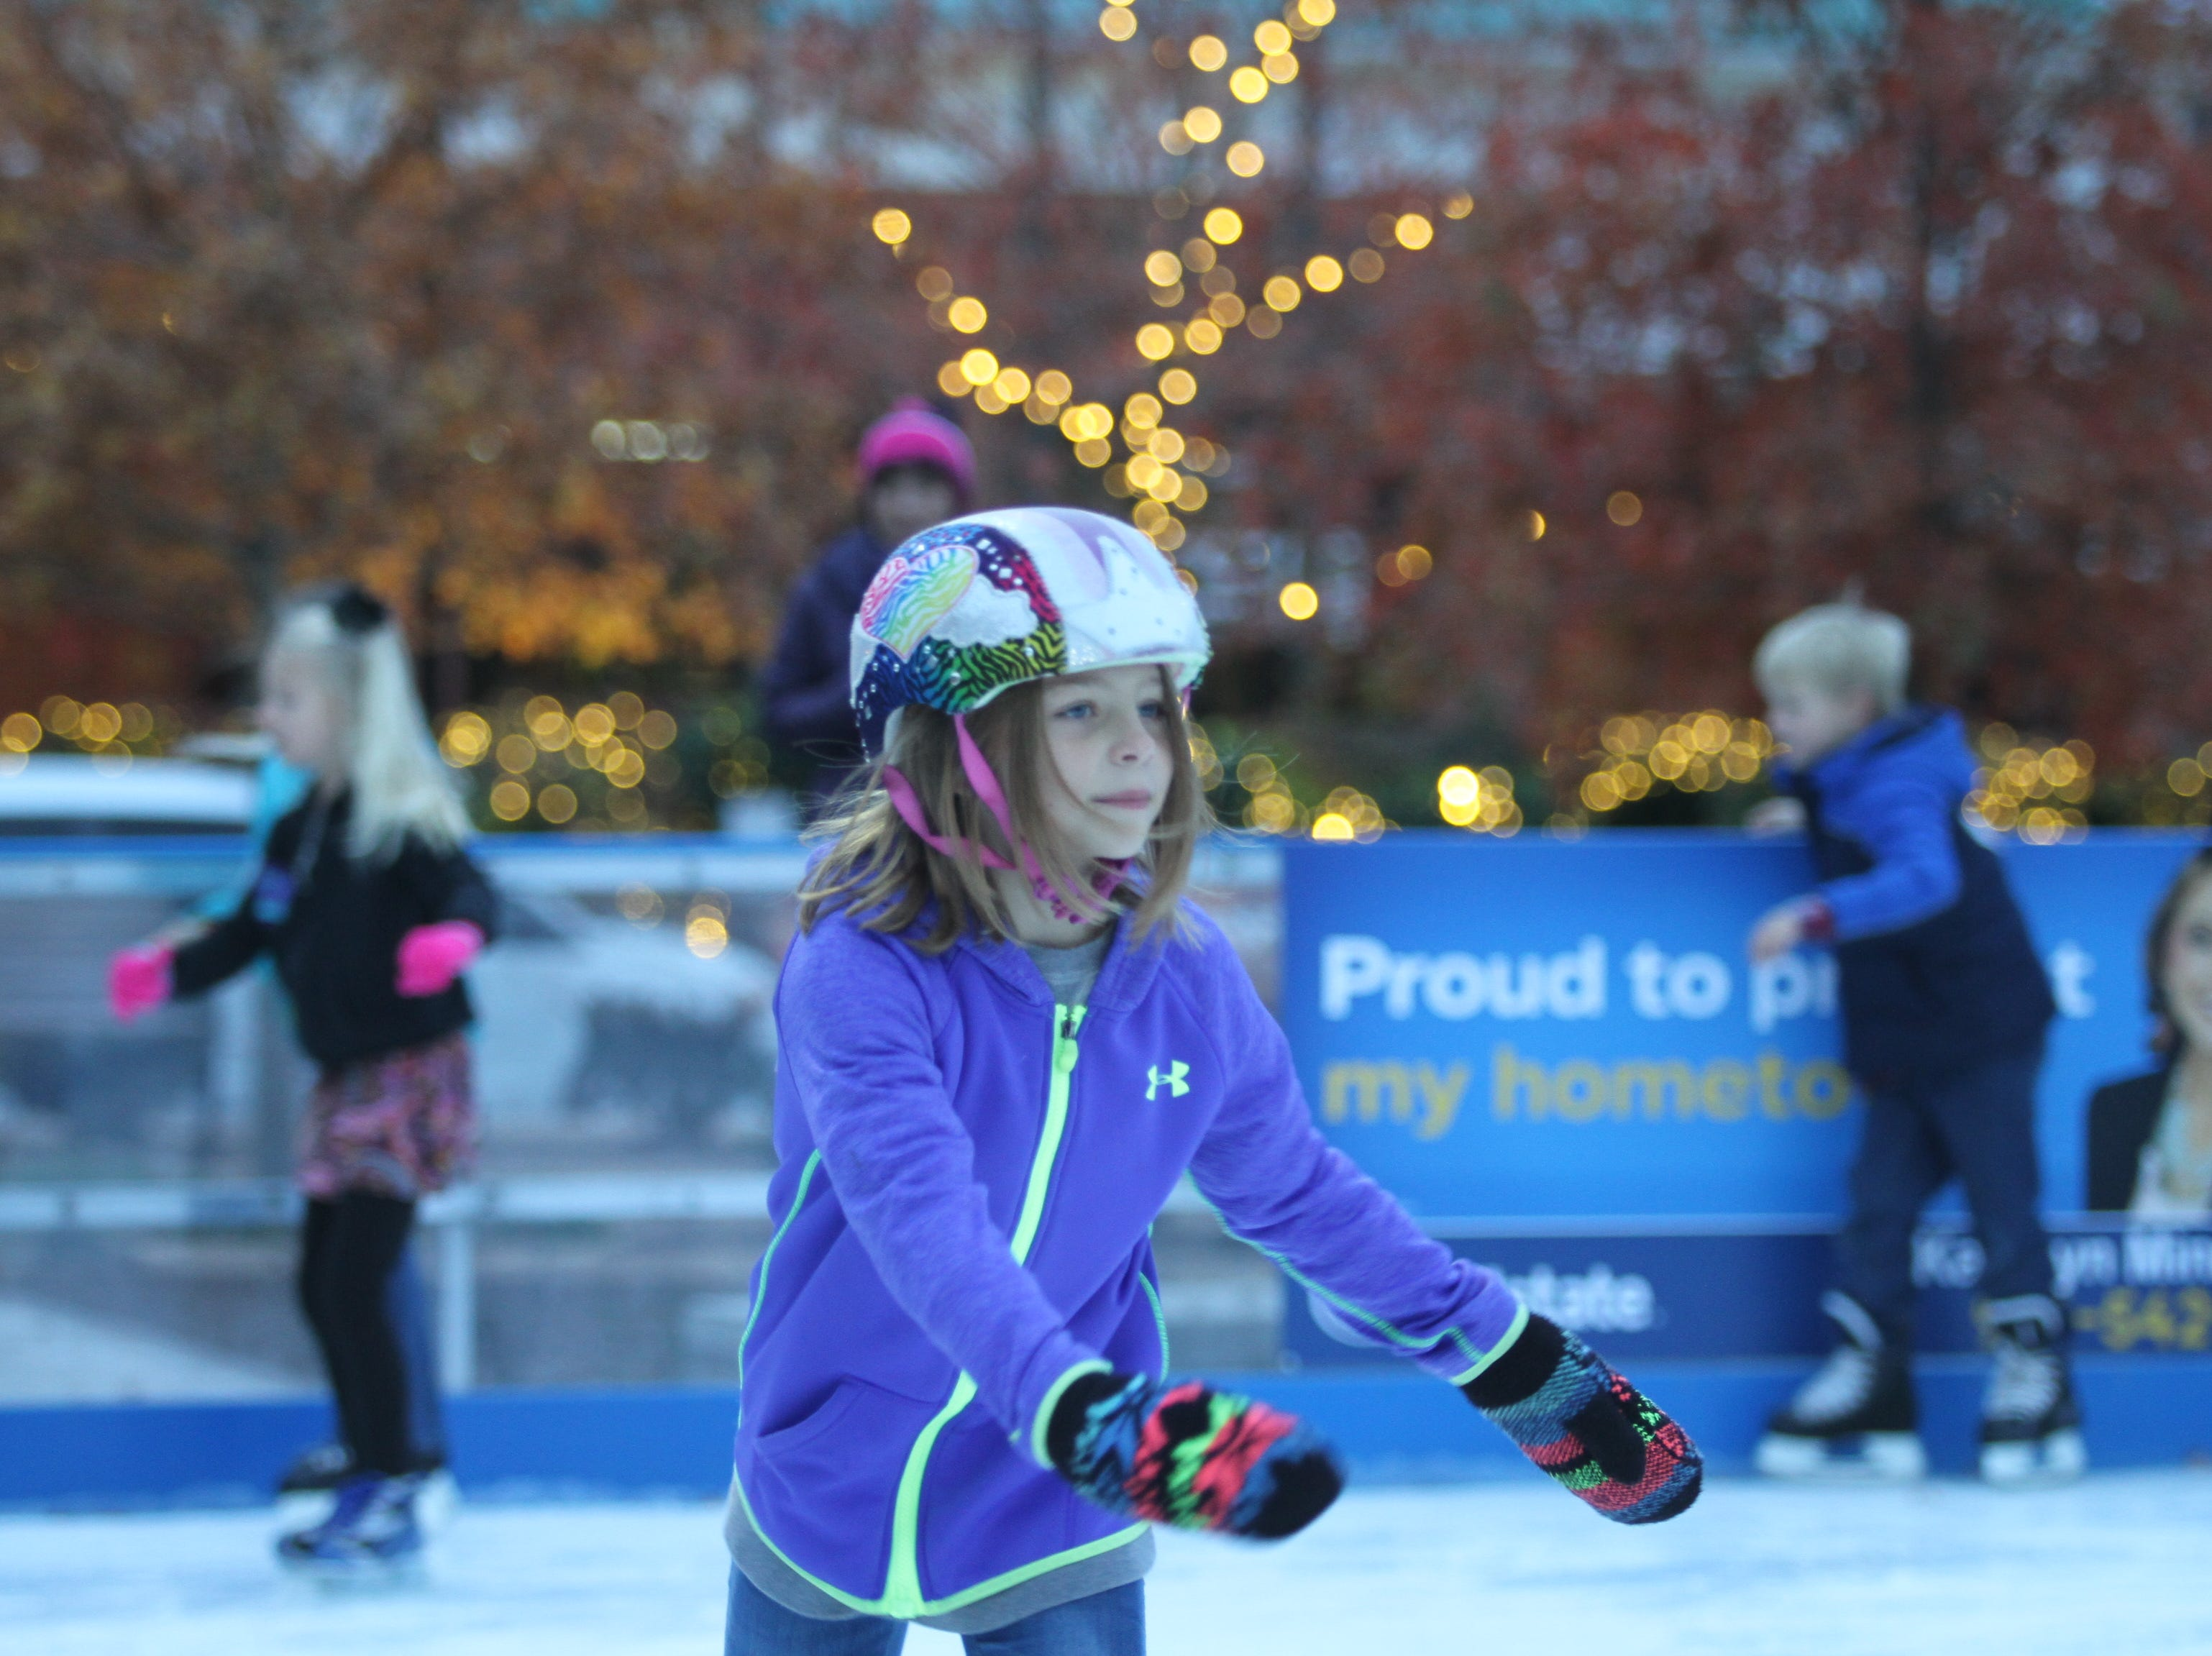 The Downtown Commons Winter Ice Rink officially opened on Friday, Nov. 23, 2018.